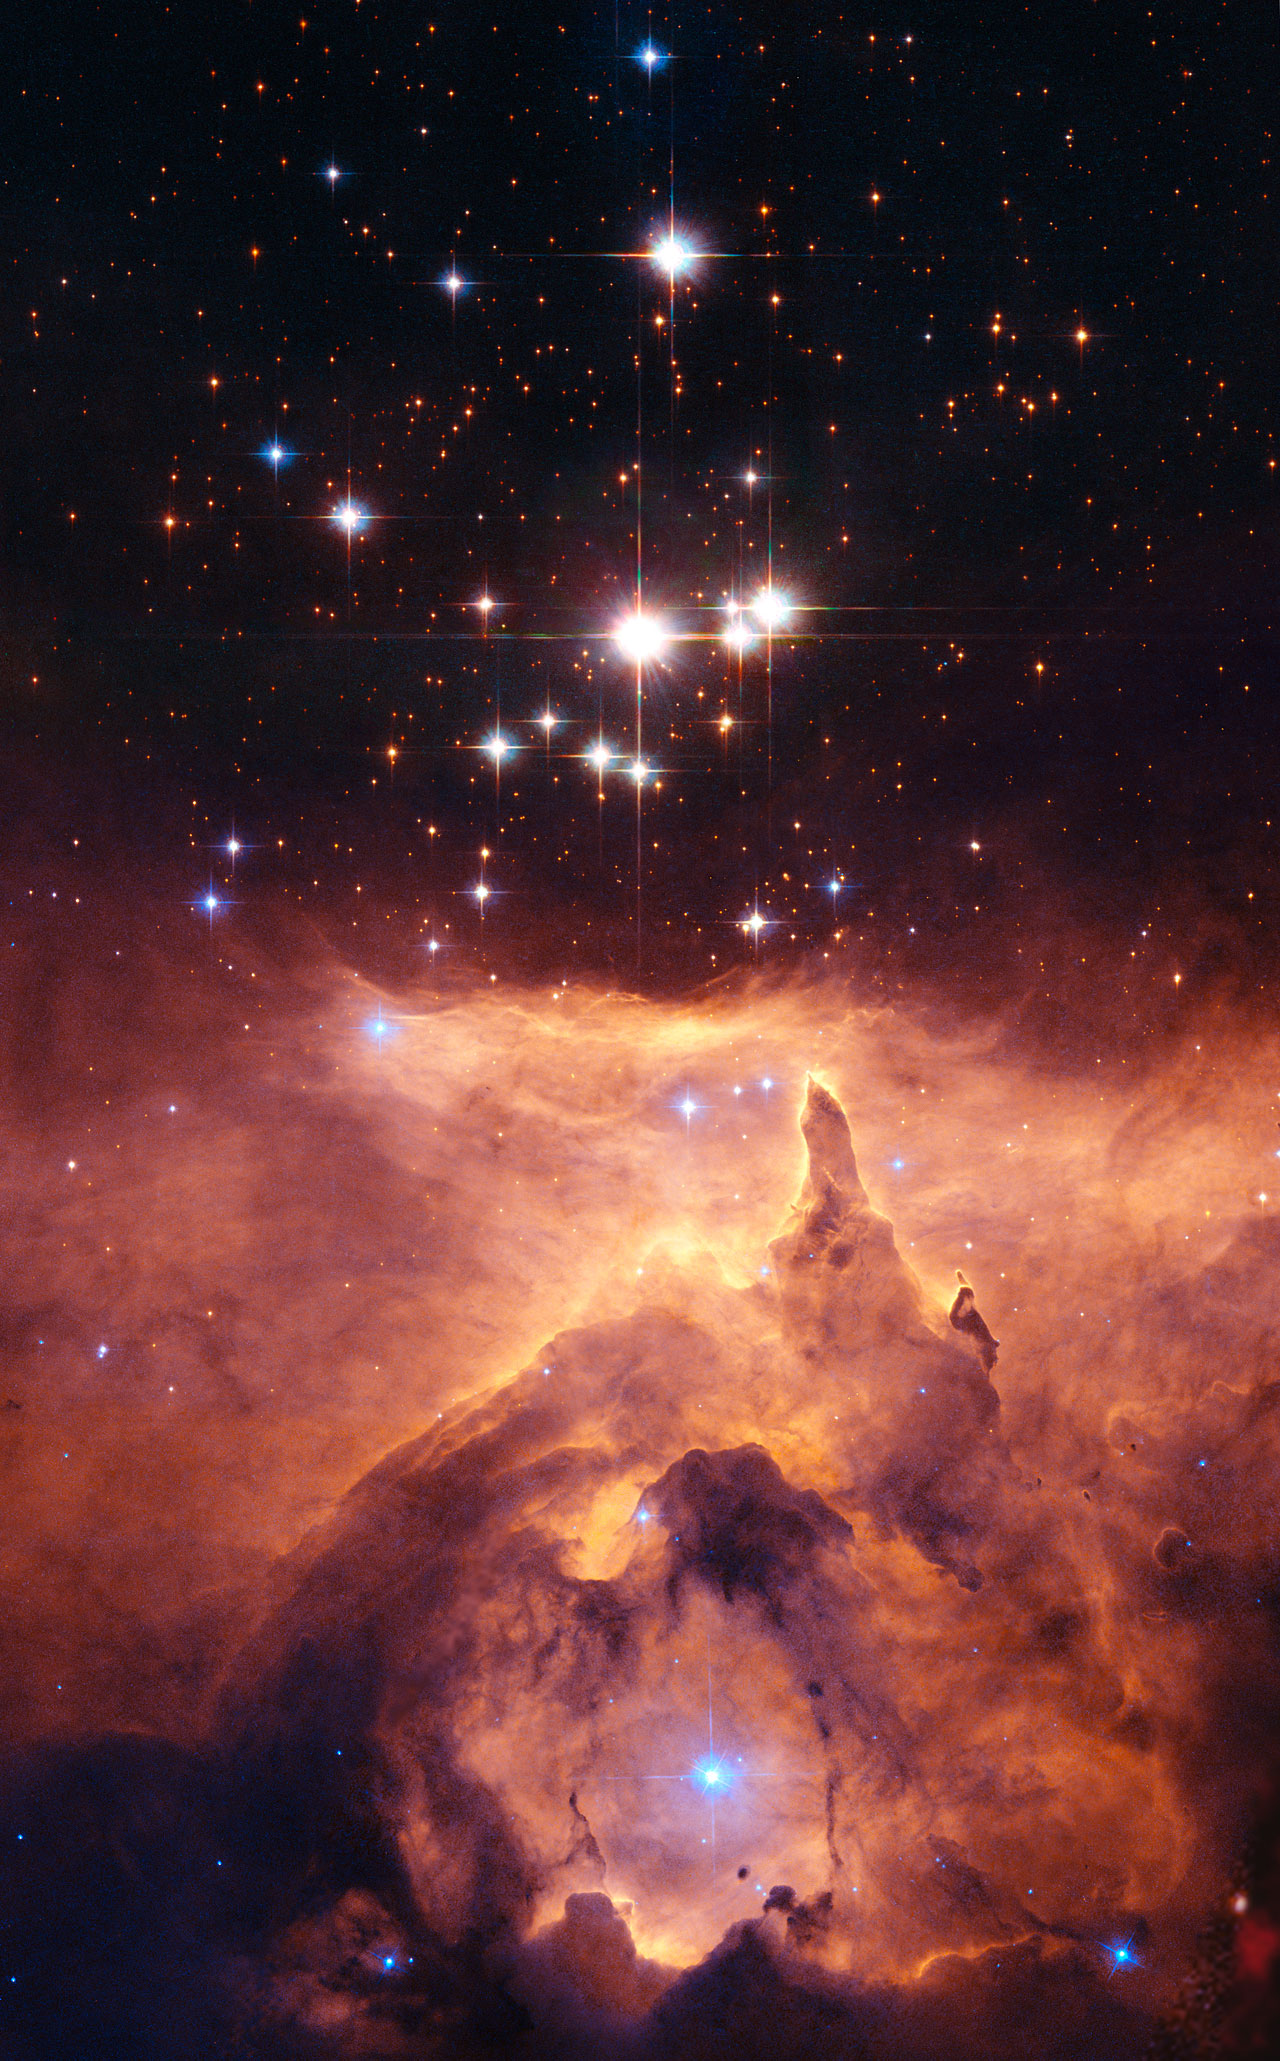 massive star pics from nasa - photo #6